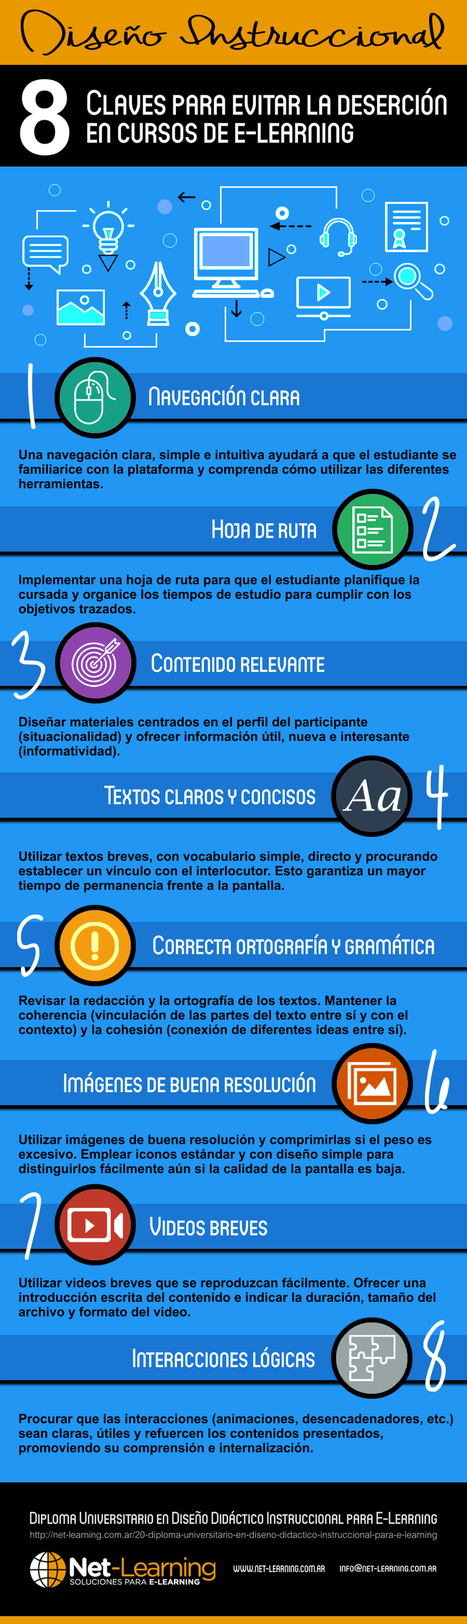 Diseño instruccional: 8 claves para evitar la deserción en cursos de e-learning | Multimedia Educativa | Scoop.it